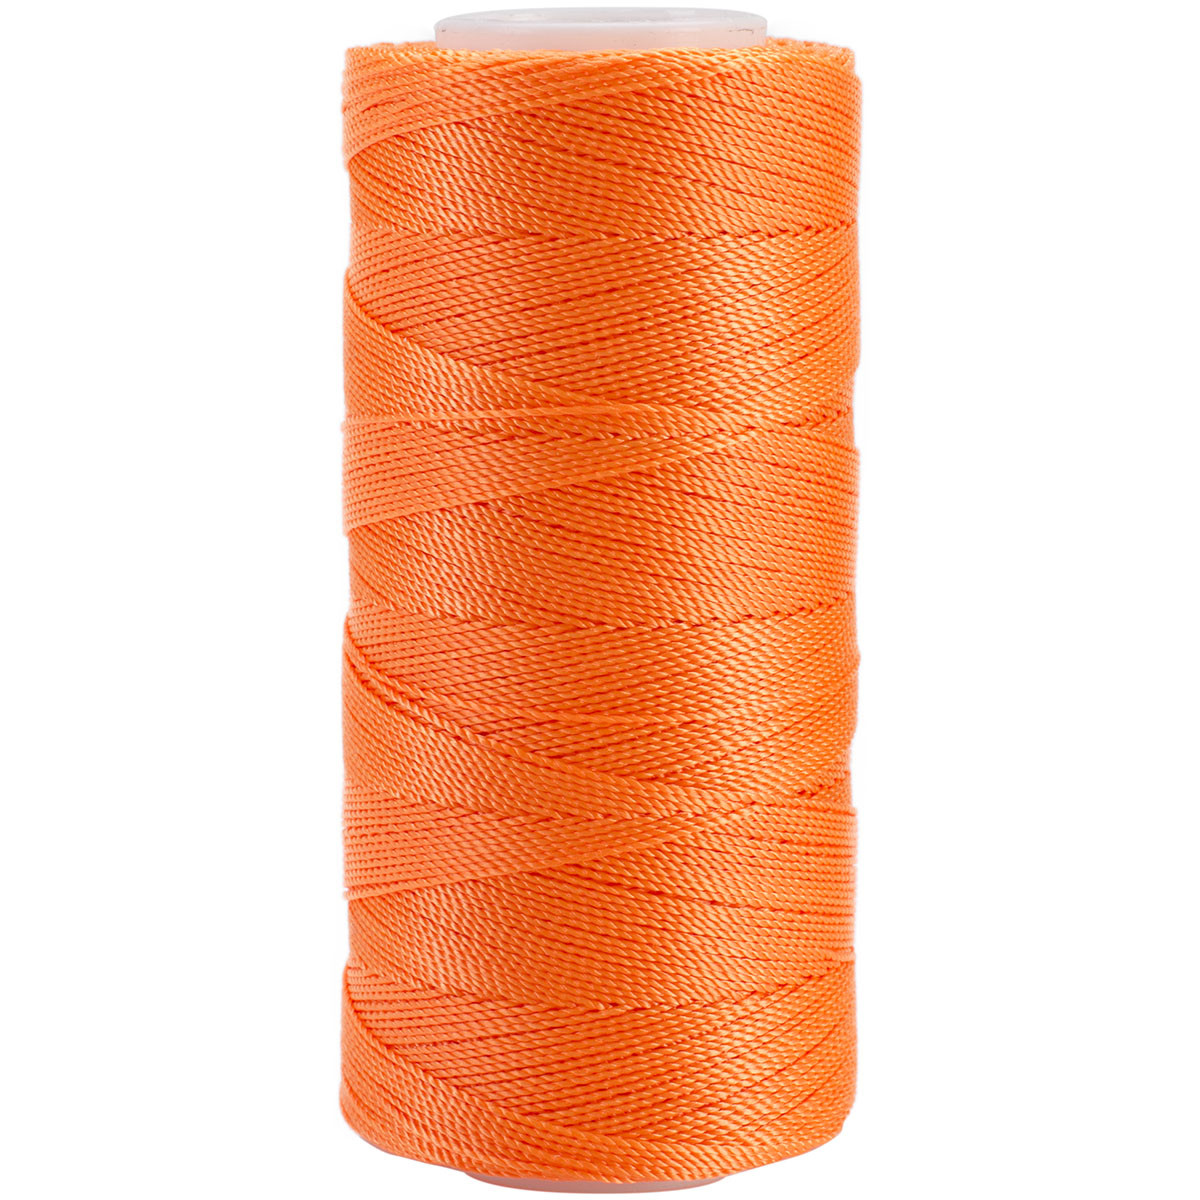 Nylon Crochet Thread Luxury Iris Nylon Crochet Thread Neon orange Size 2 300yd Of Wonderful 41 Pics Nylon Crochet Thread